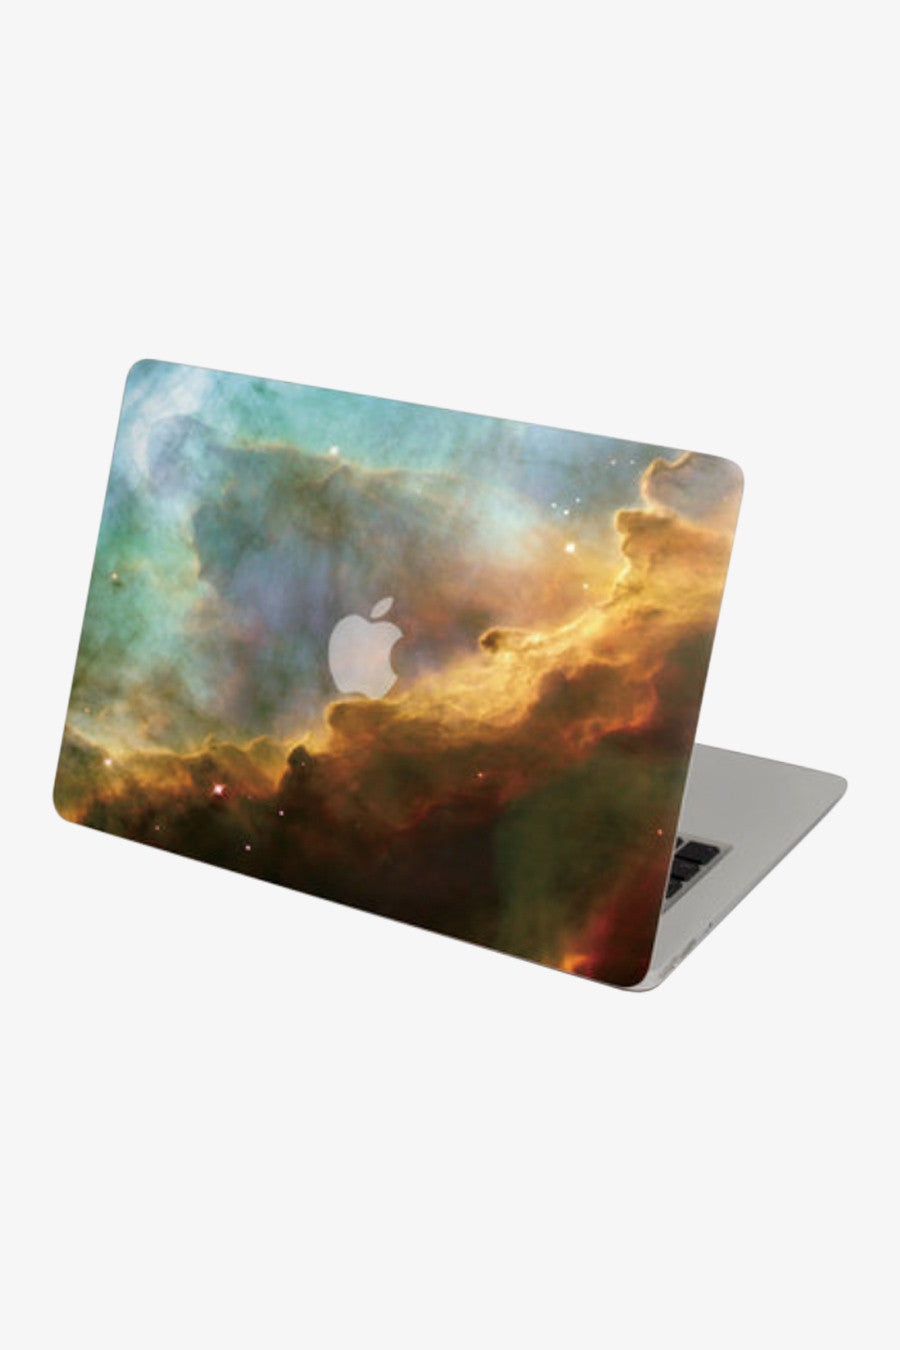 Macbook Gorgeous Sandstorm Skin Decal Sticker. Art Decals By Moooh!!